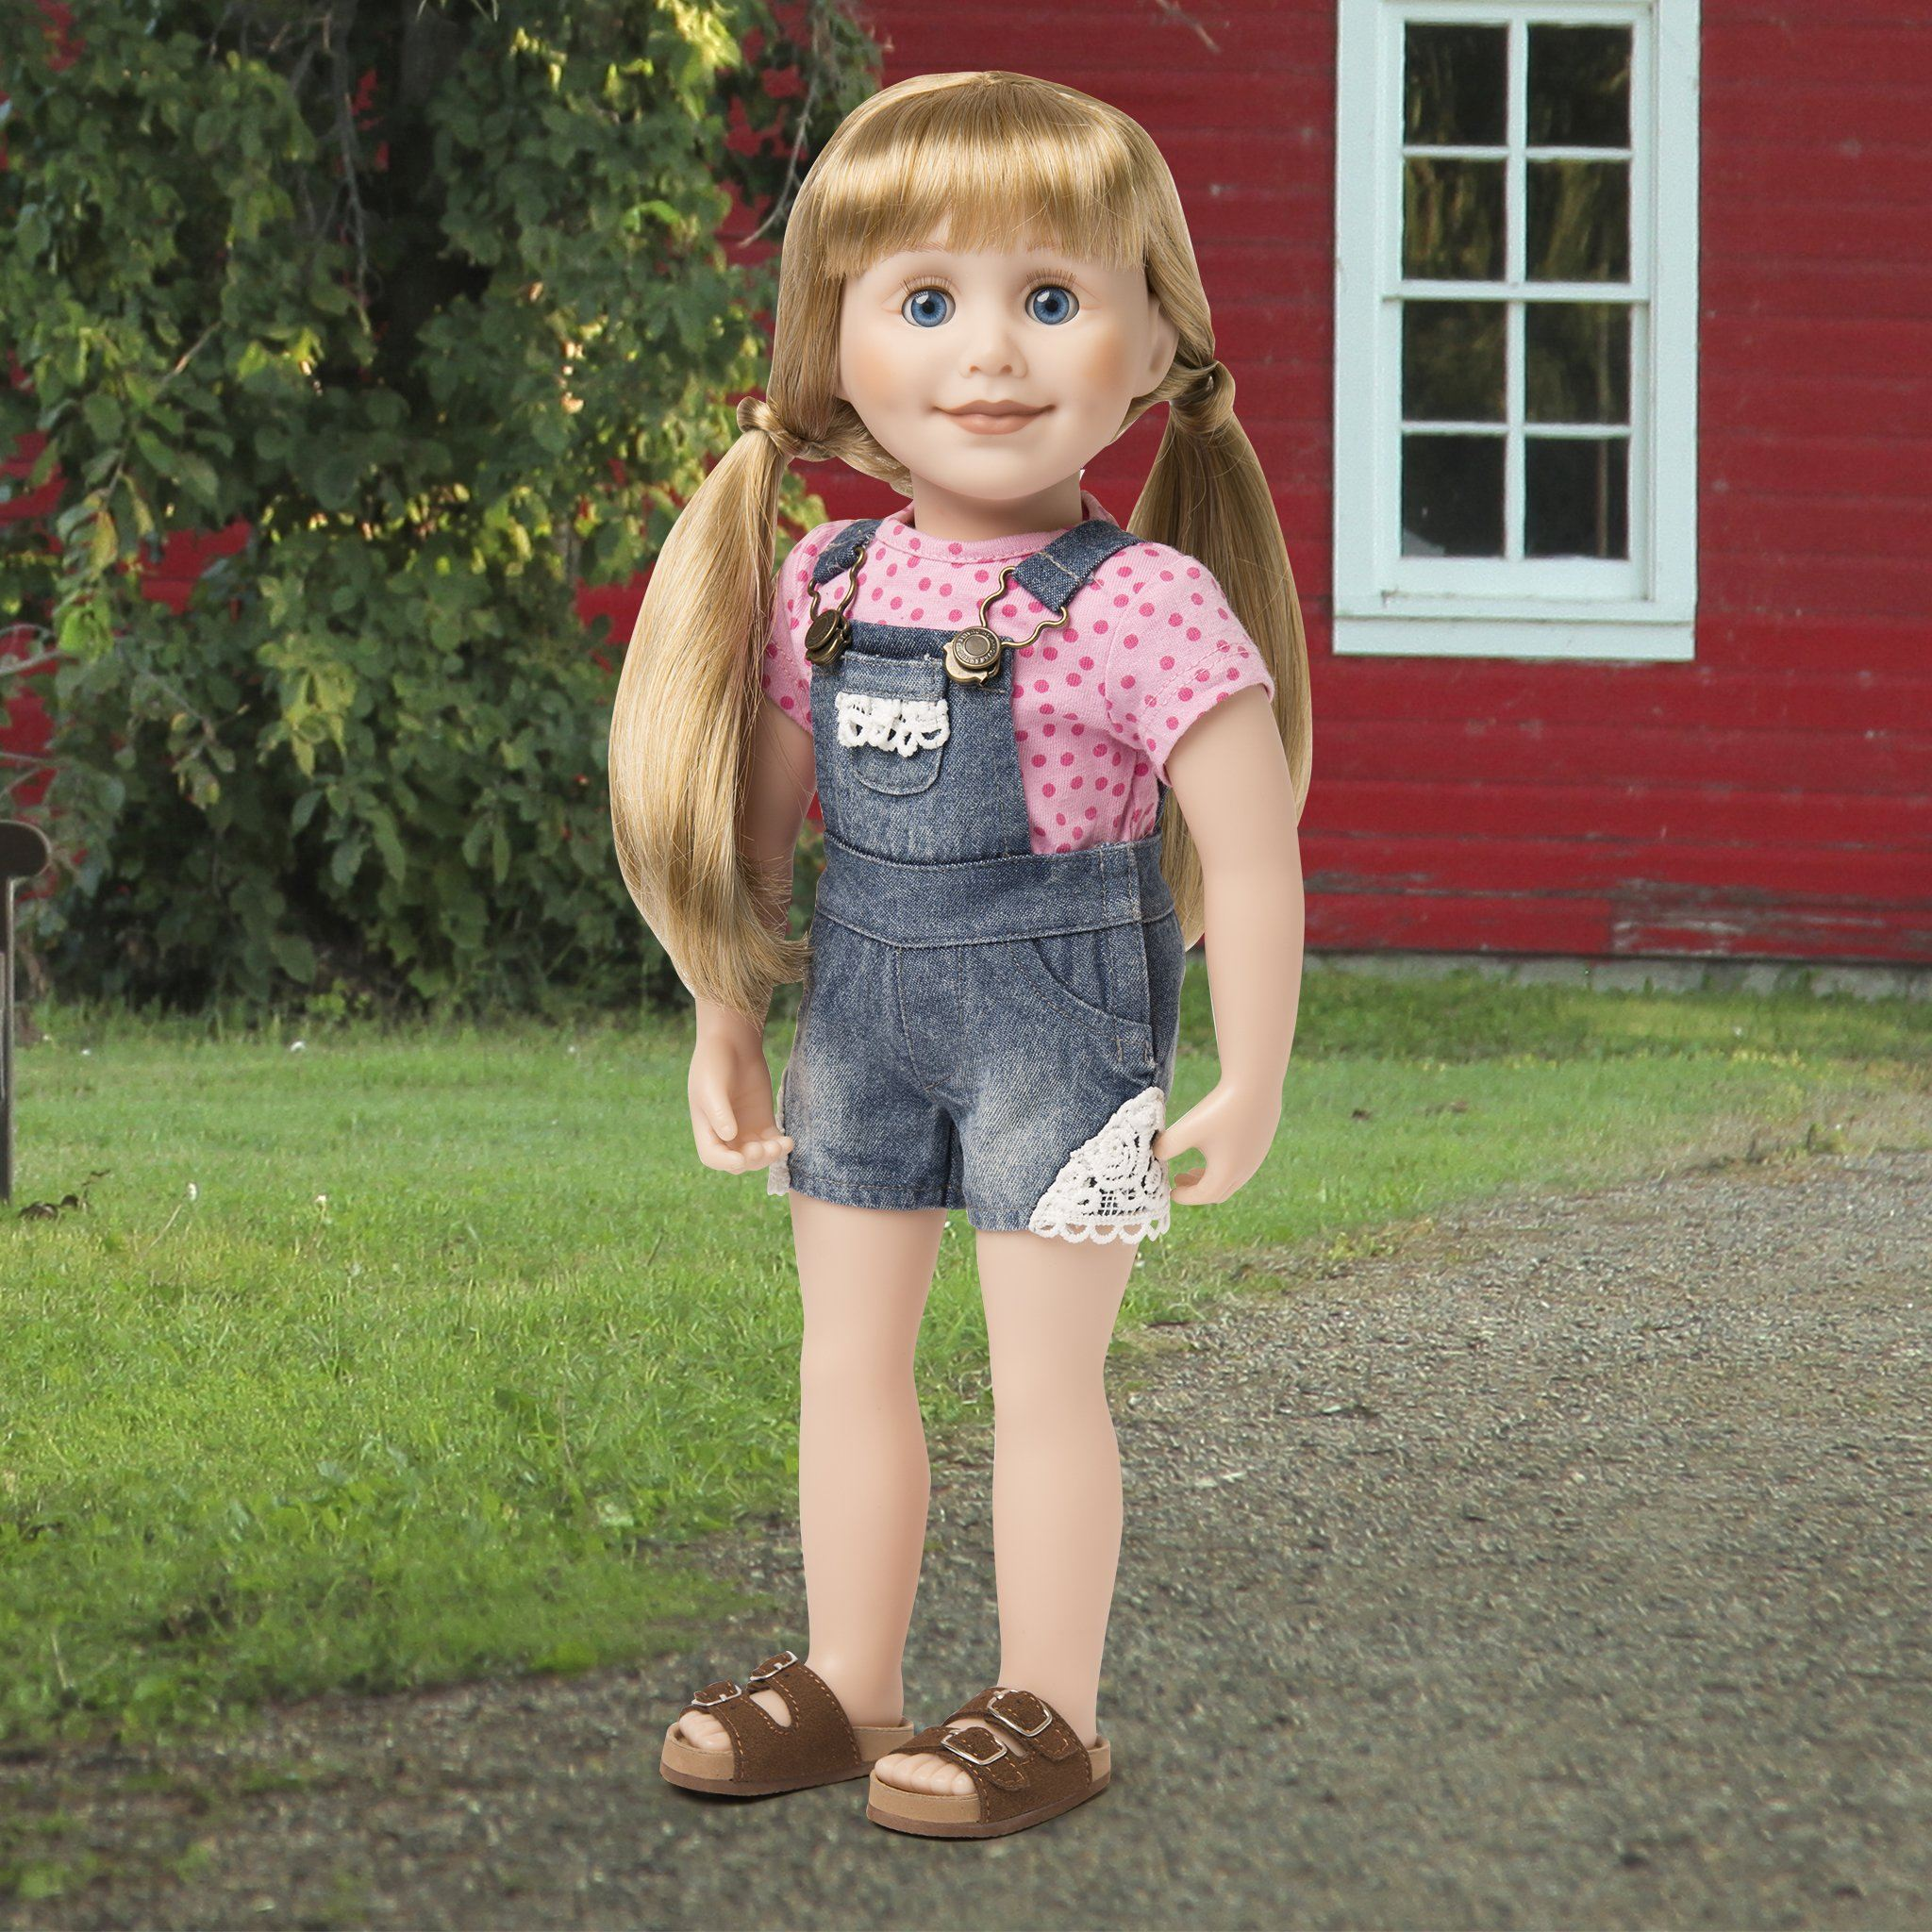 "Summer denim overall shorts with lace trim and pink polka dot t-shirt shown on 18"" doll at a farm."